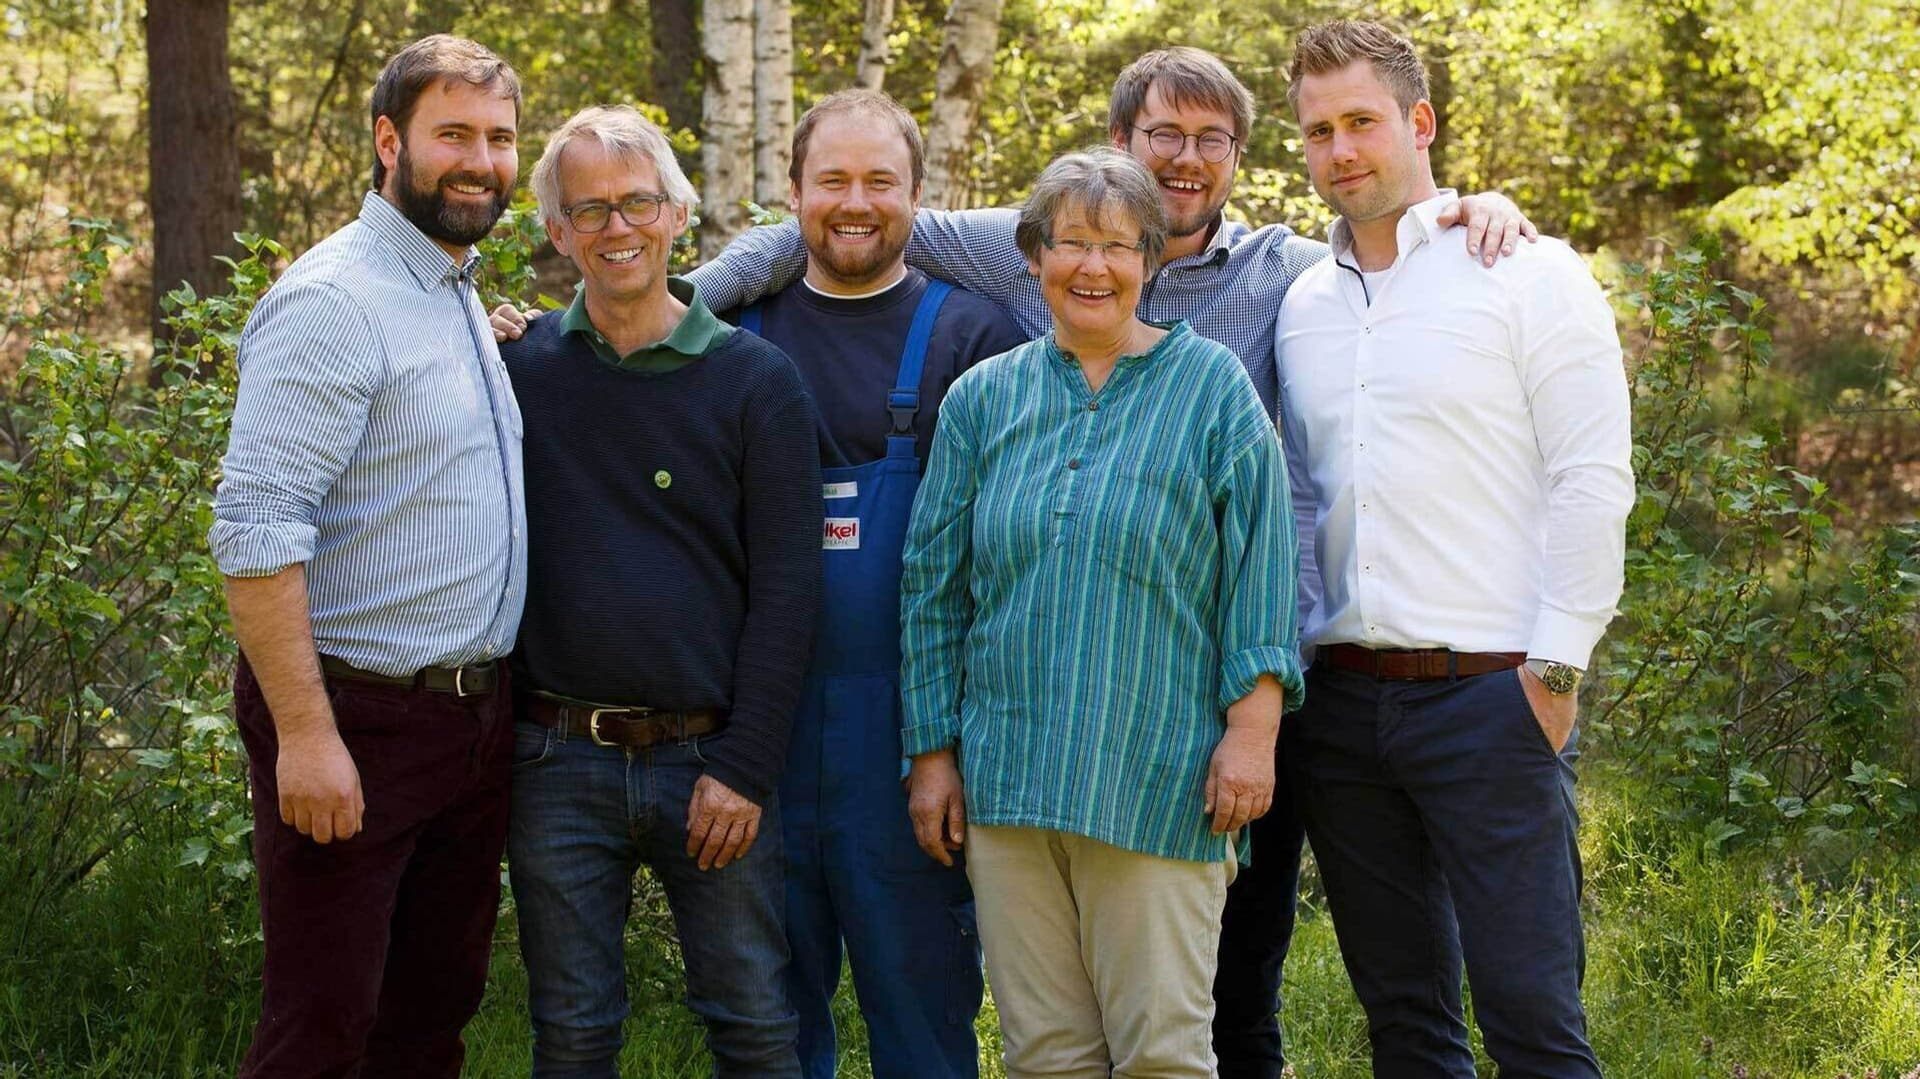 Boris, Stefan, David, Grita, Jurek, Jacob Voelkel